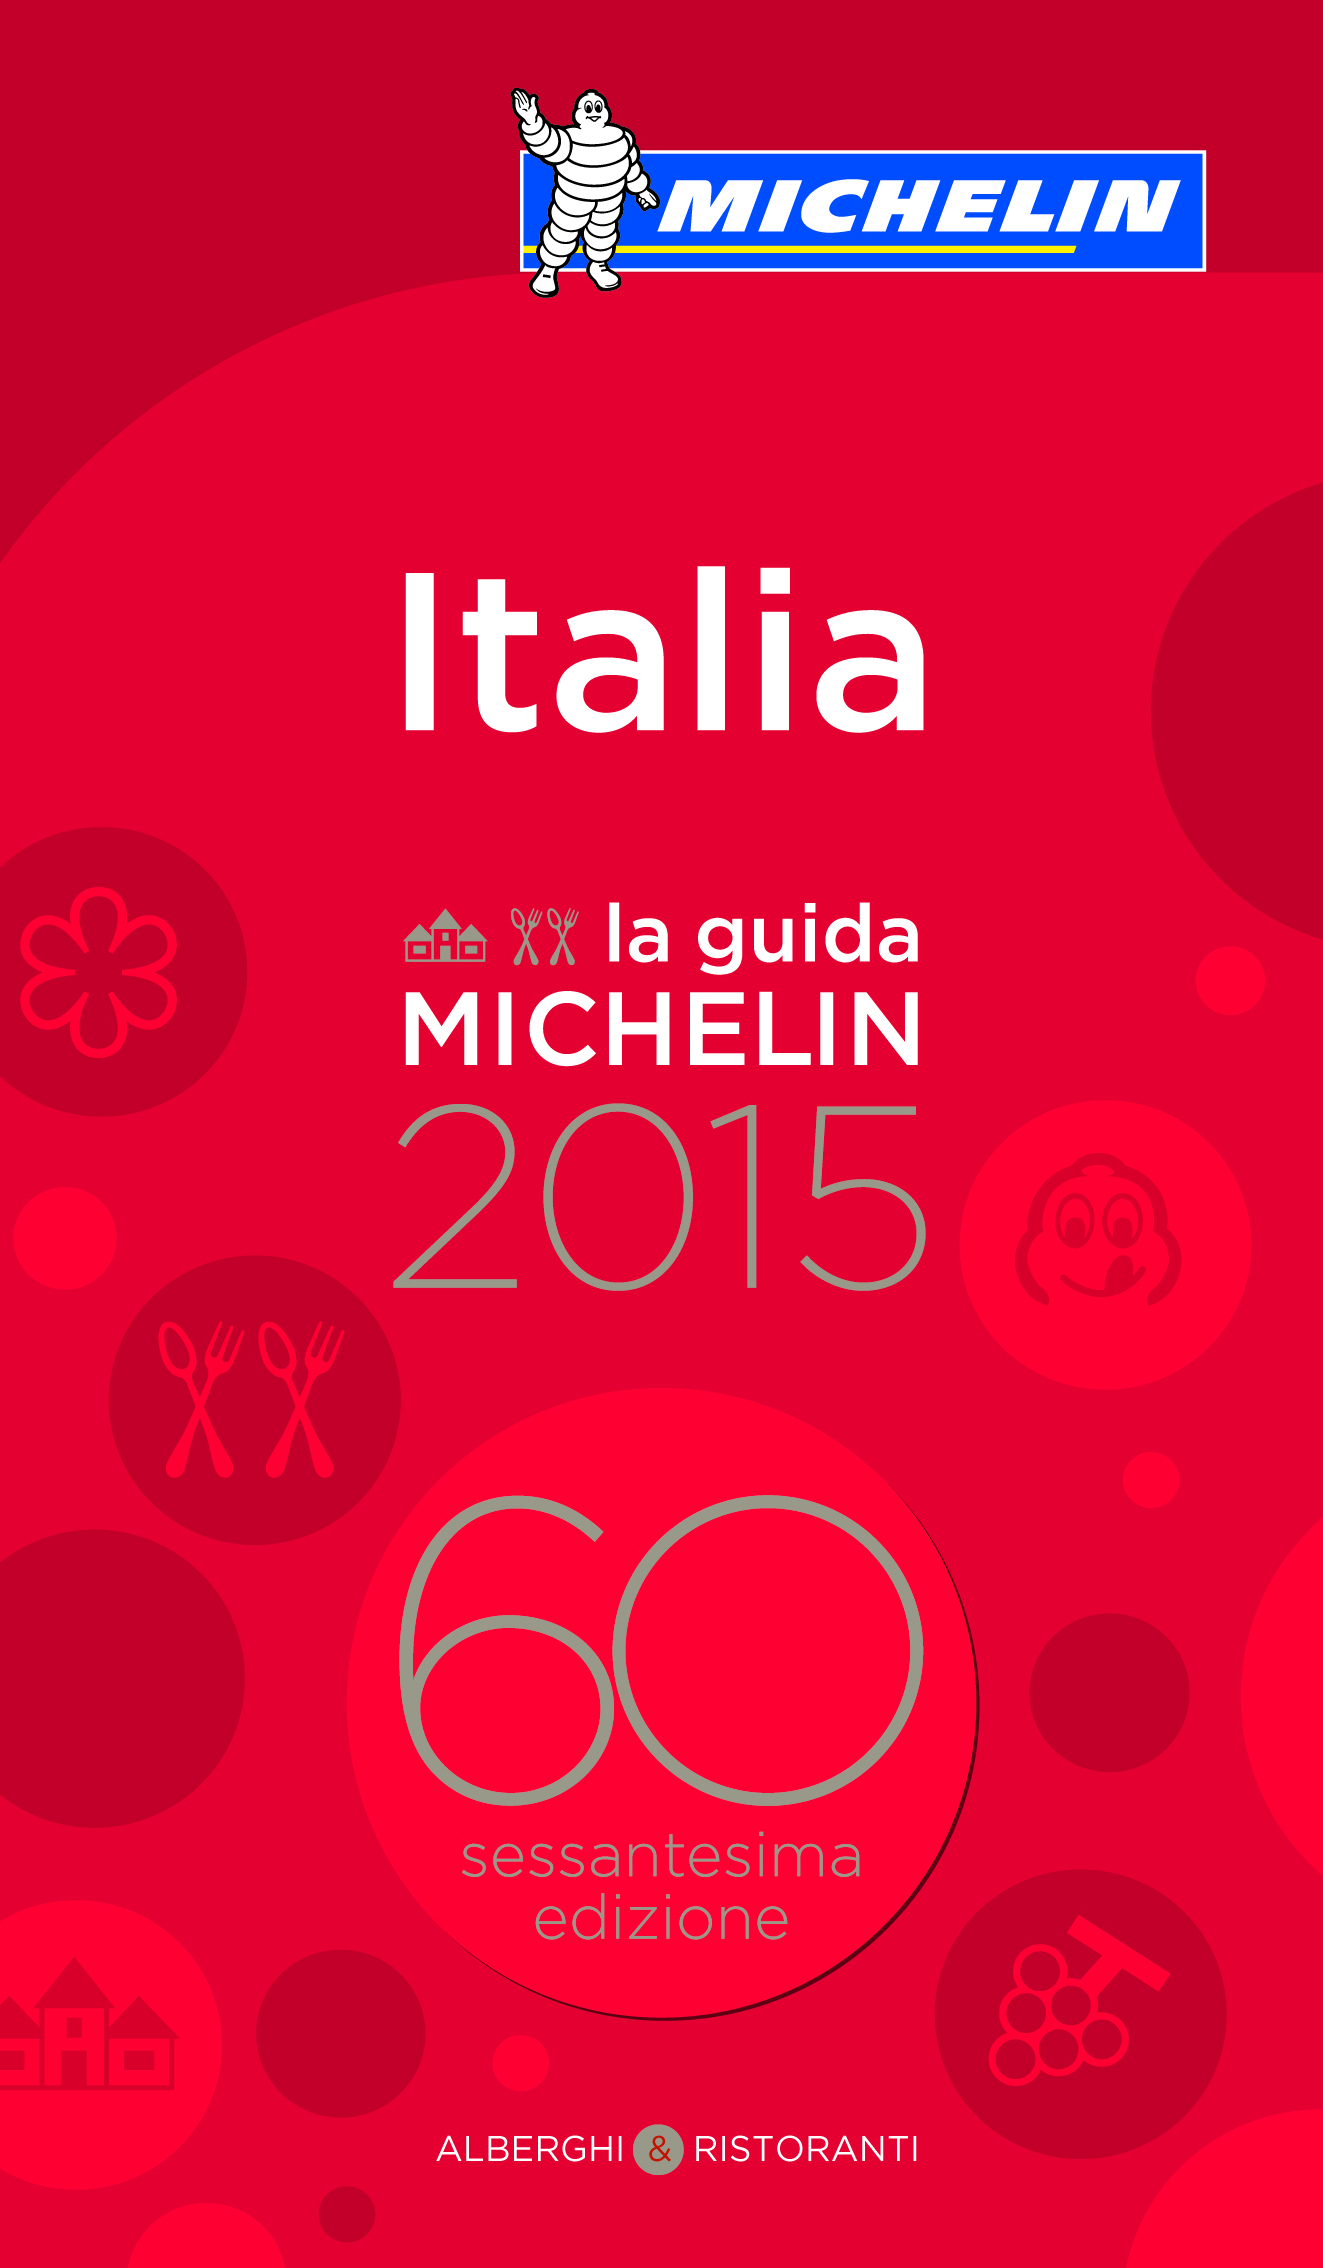 Michelin guide to italy 2018 all about italy.